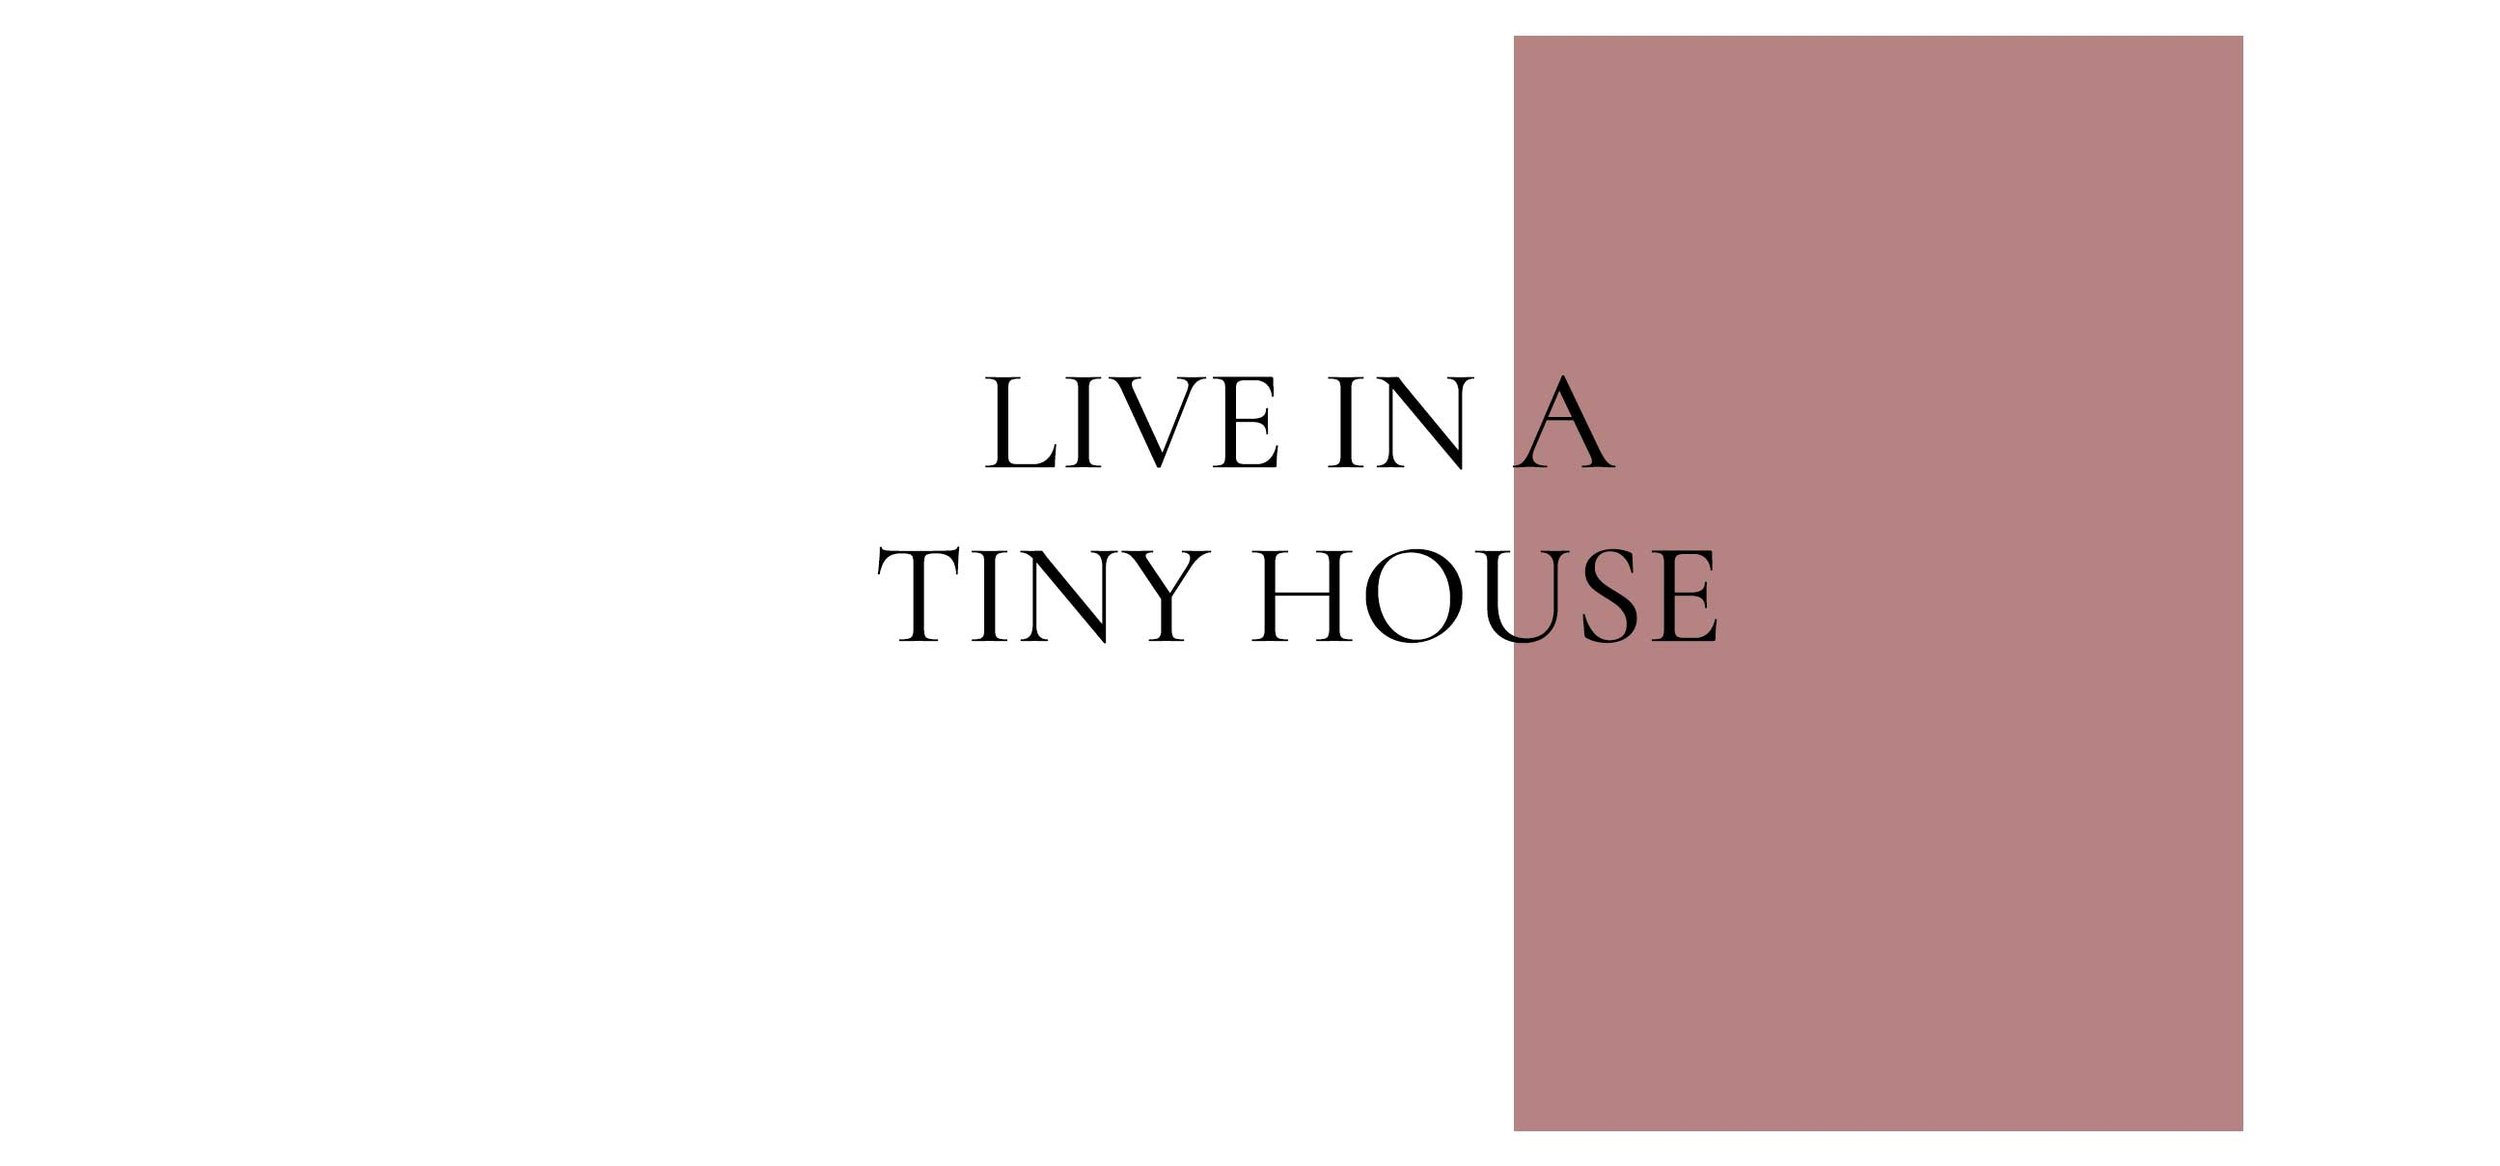 7-Live-In-A-Tiny-House.jpg